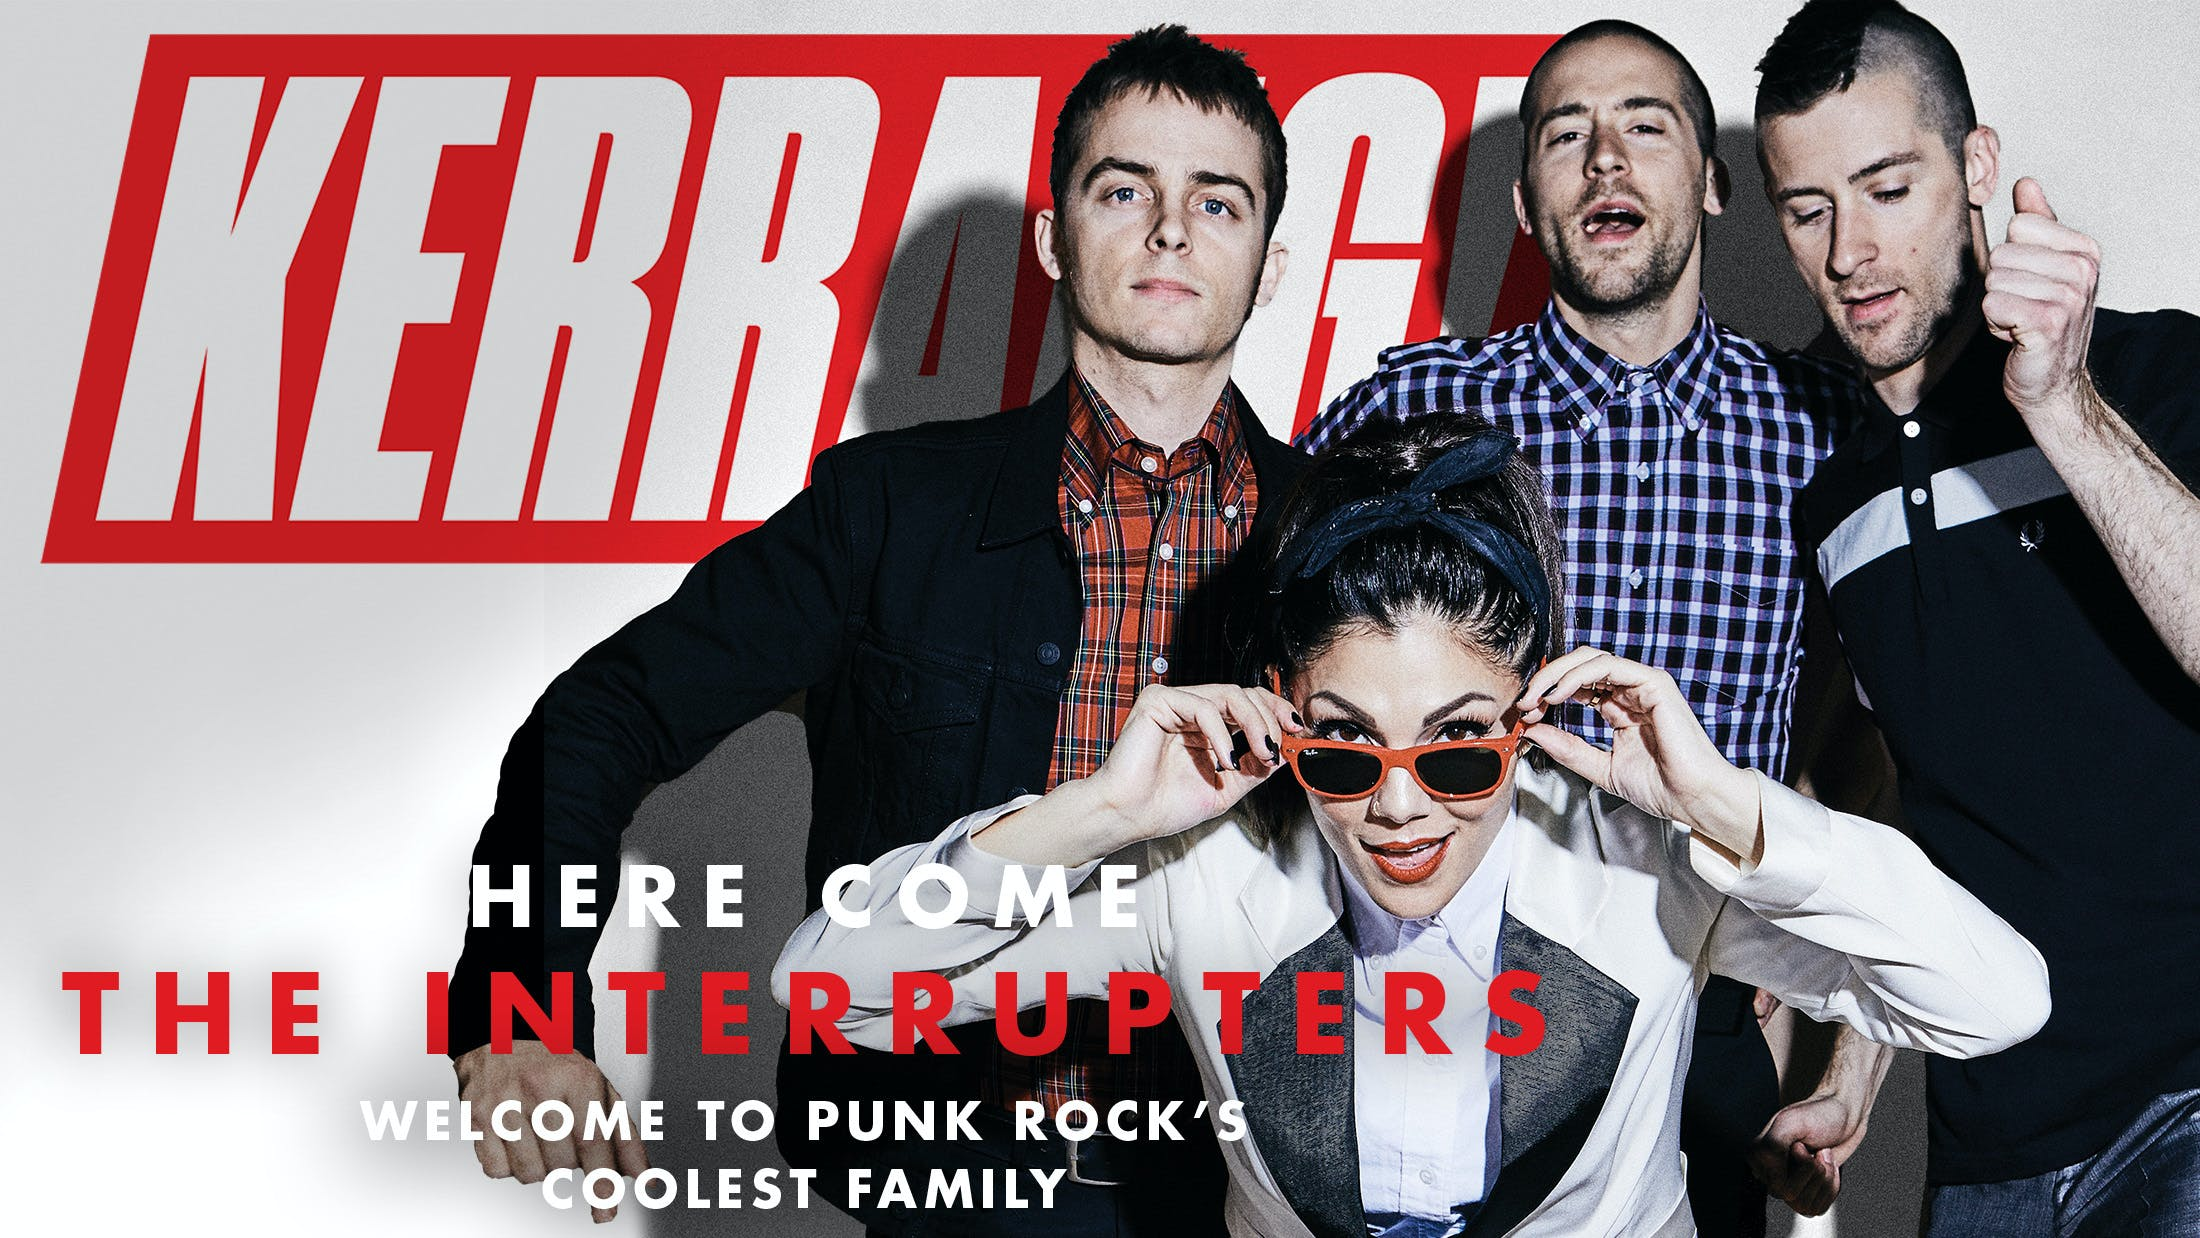 Here Come The Interrupters: Welcome To Punk Rock's Coolest Family